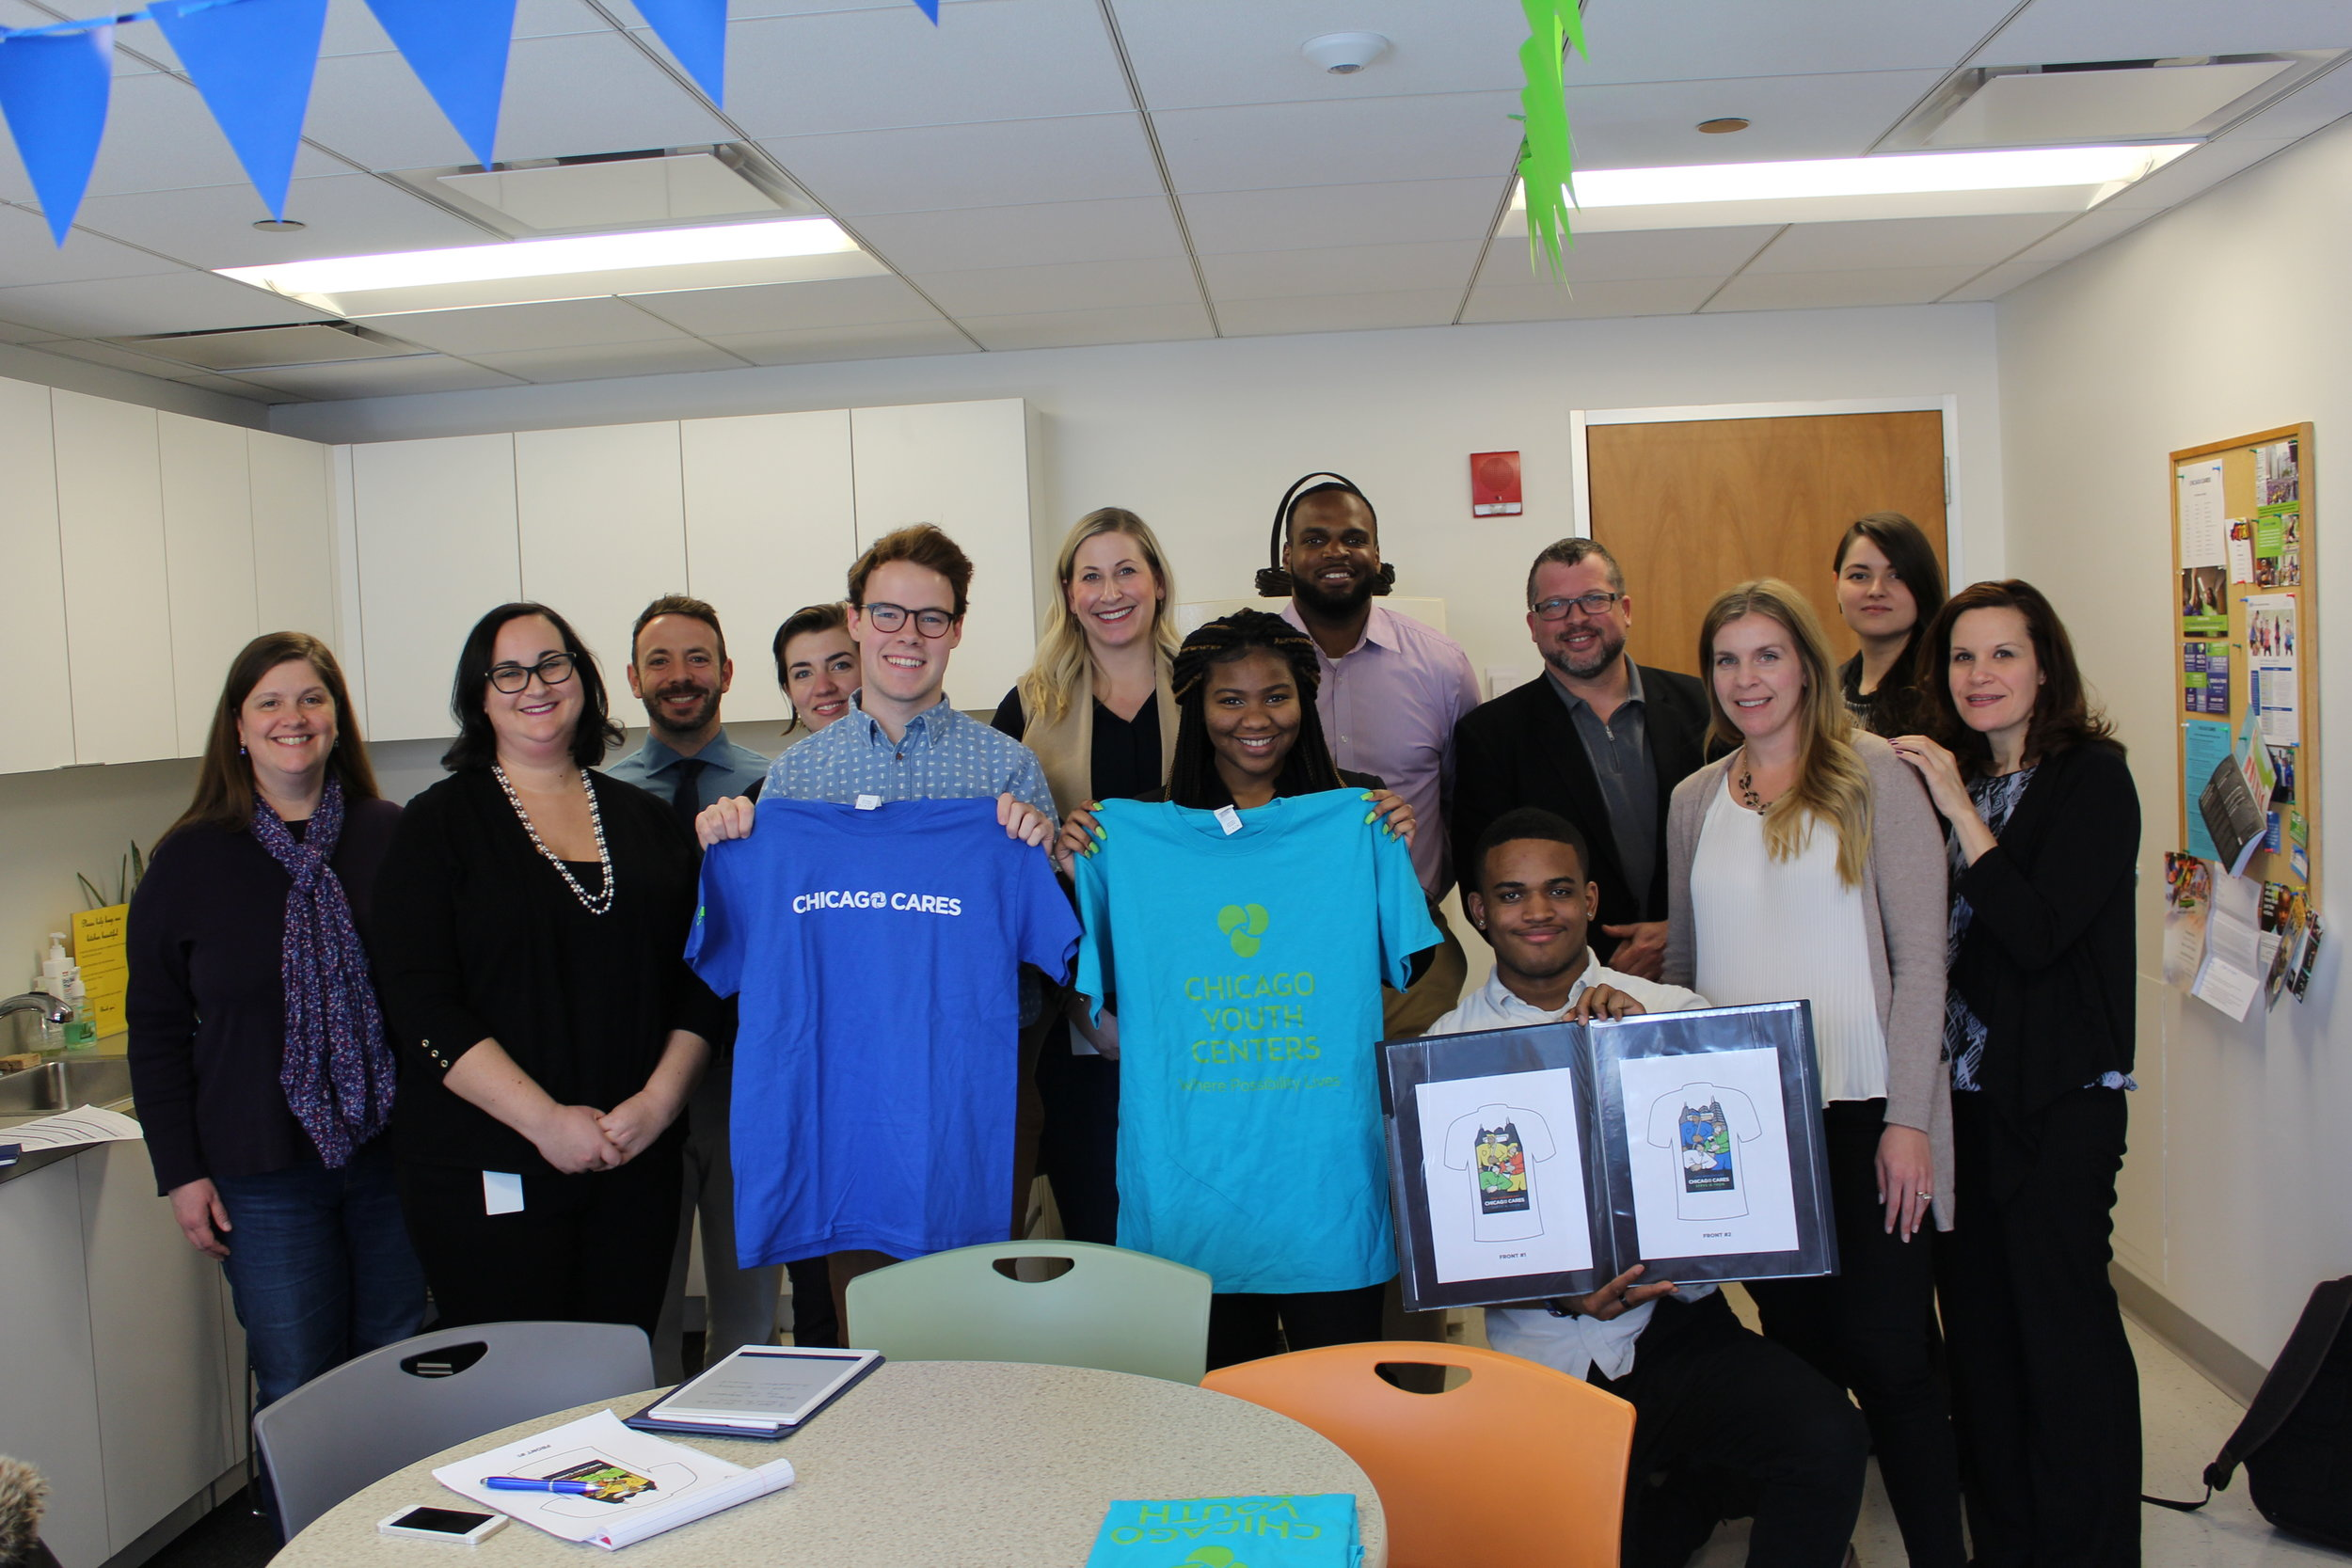 The Chicago Cares executives and CYC staff and teens posed for a photo after the business meeting.